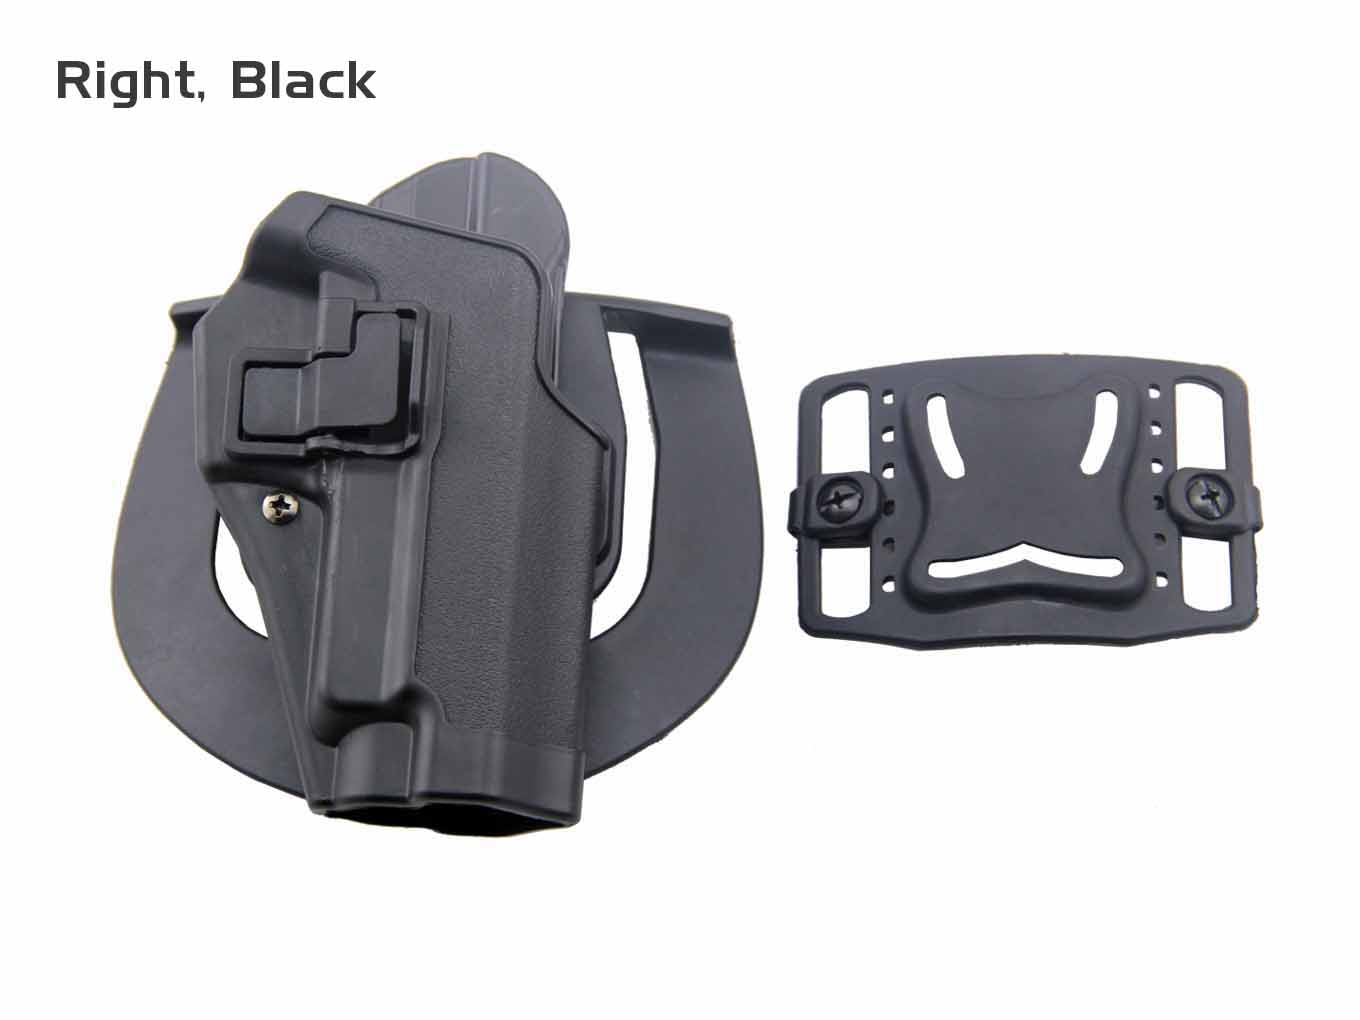 AOLS Tactical Holster CQC For P226 Black & Tan